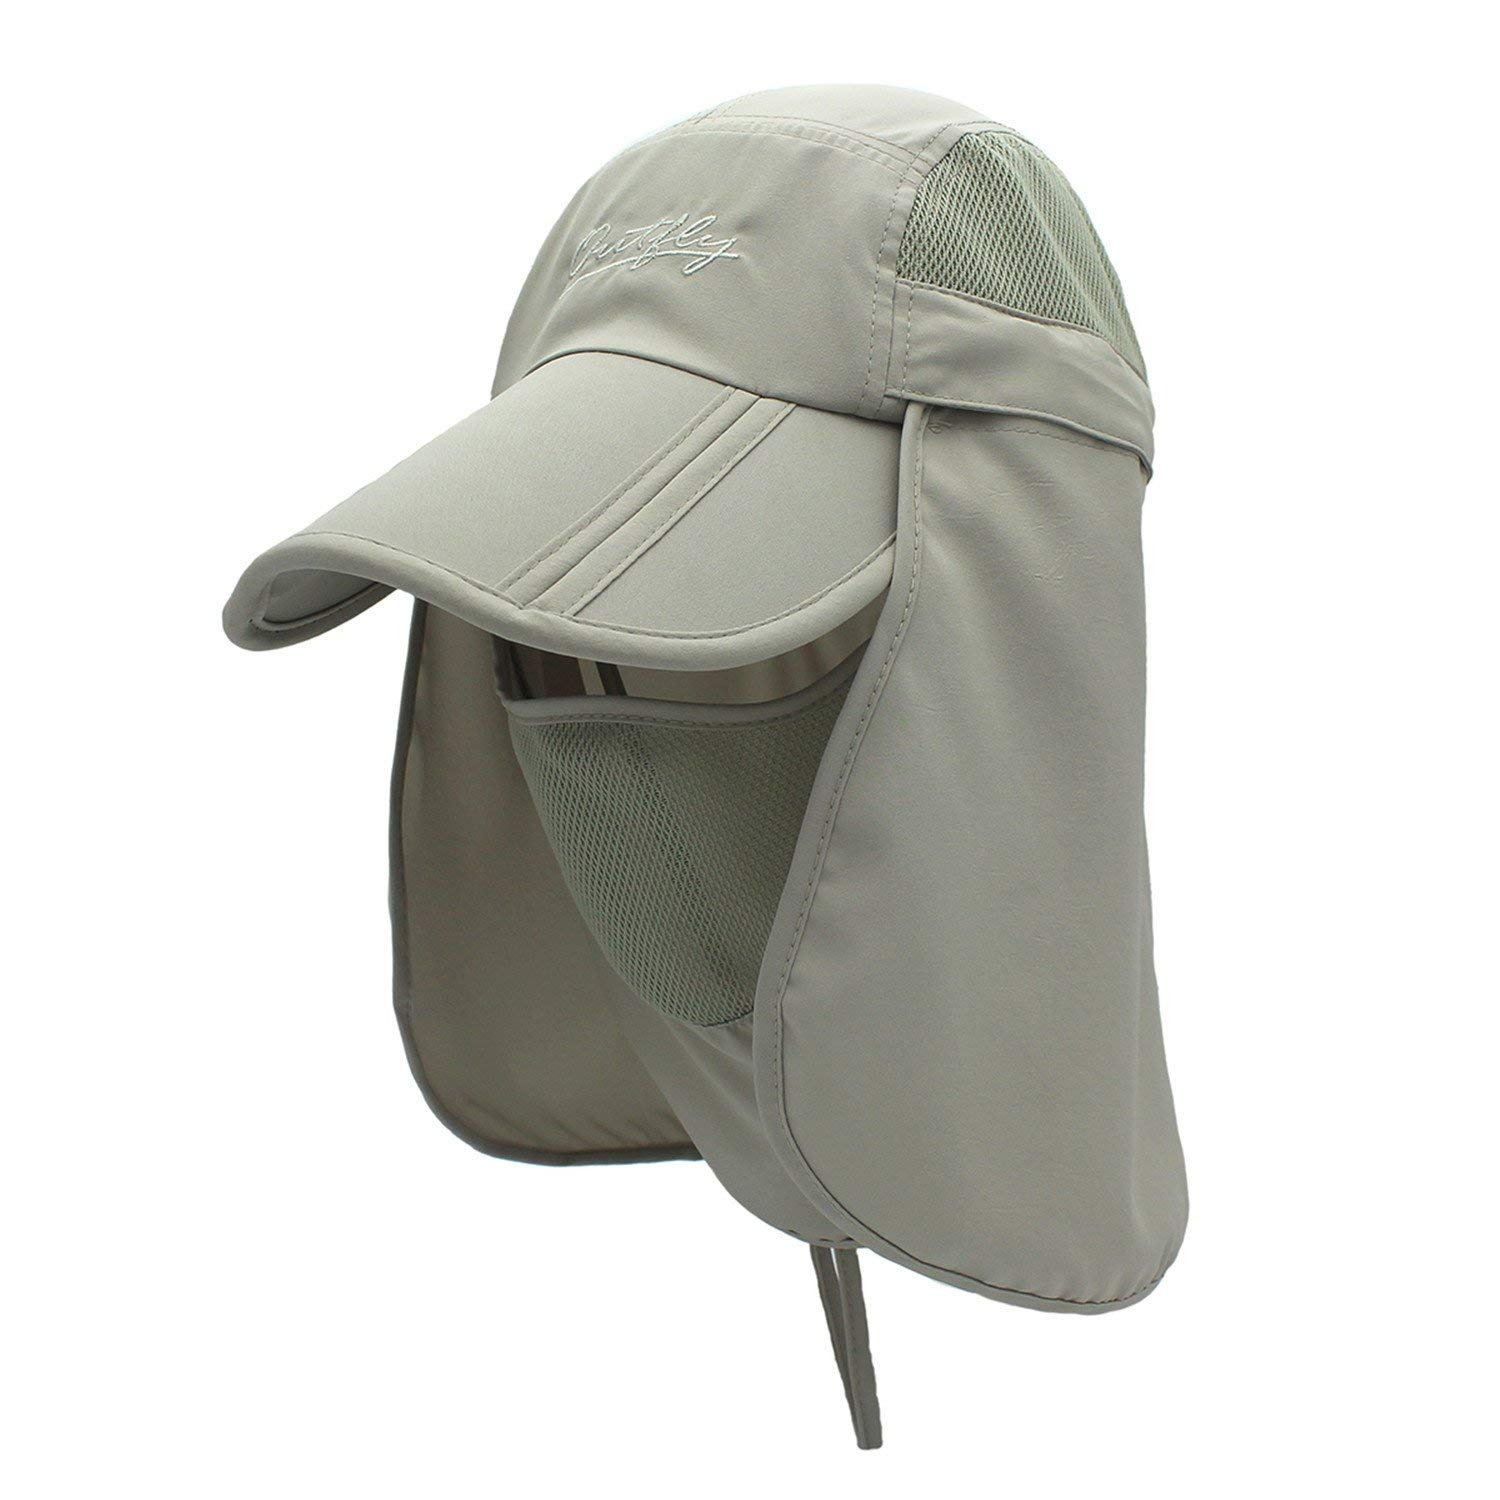 c1740e5e24ab8 Get Quotations · Removable Bucket Hat Breathable Mesh Sun Hat with Neck  Face Flap Camping Safari Hat